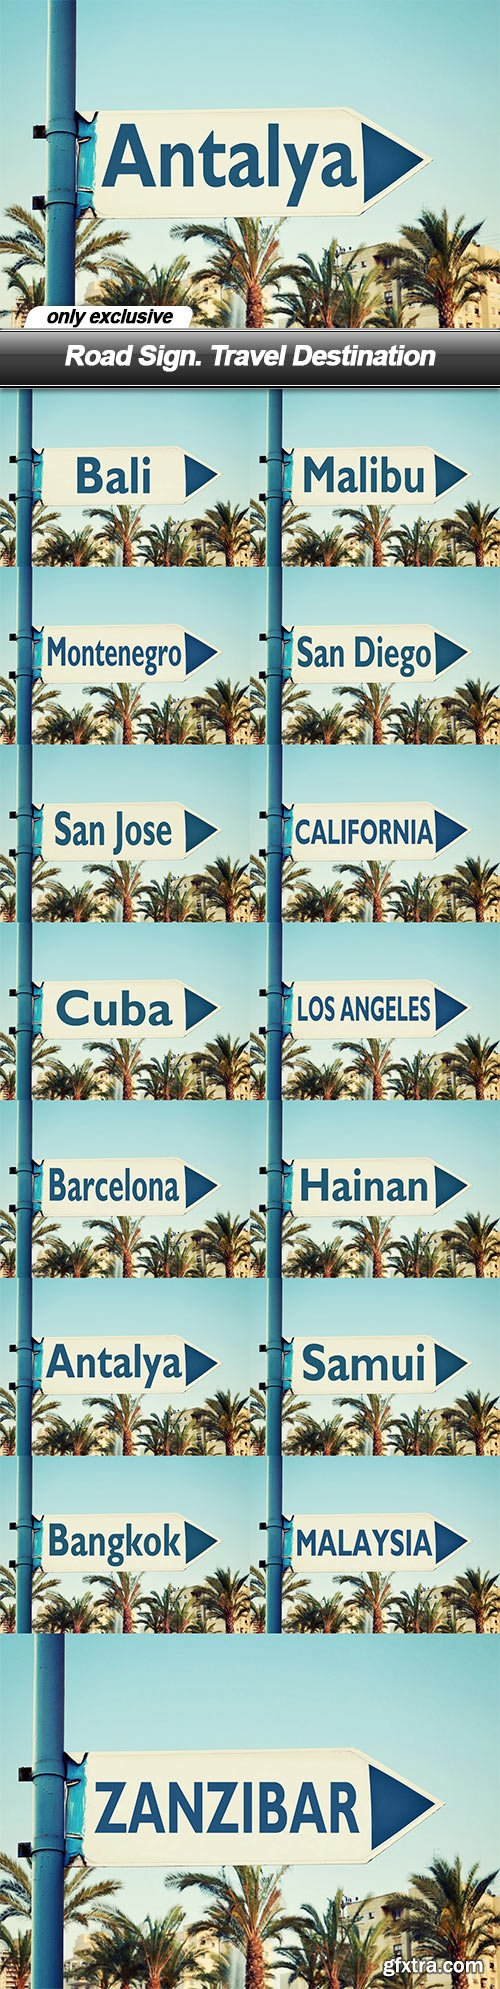 Road Sign. Travel Destination - 15 UHQ JPEG